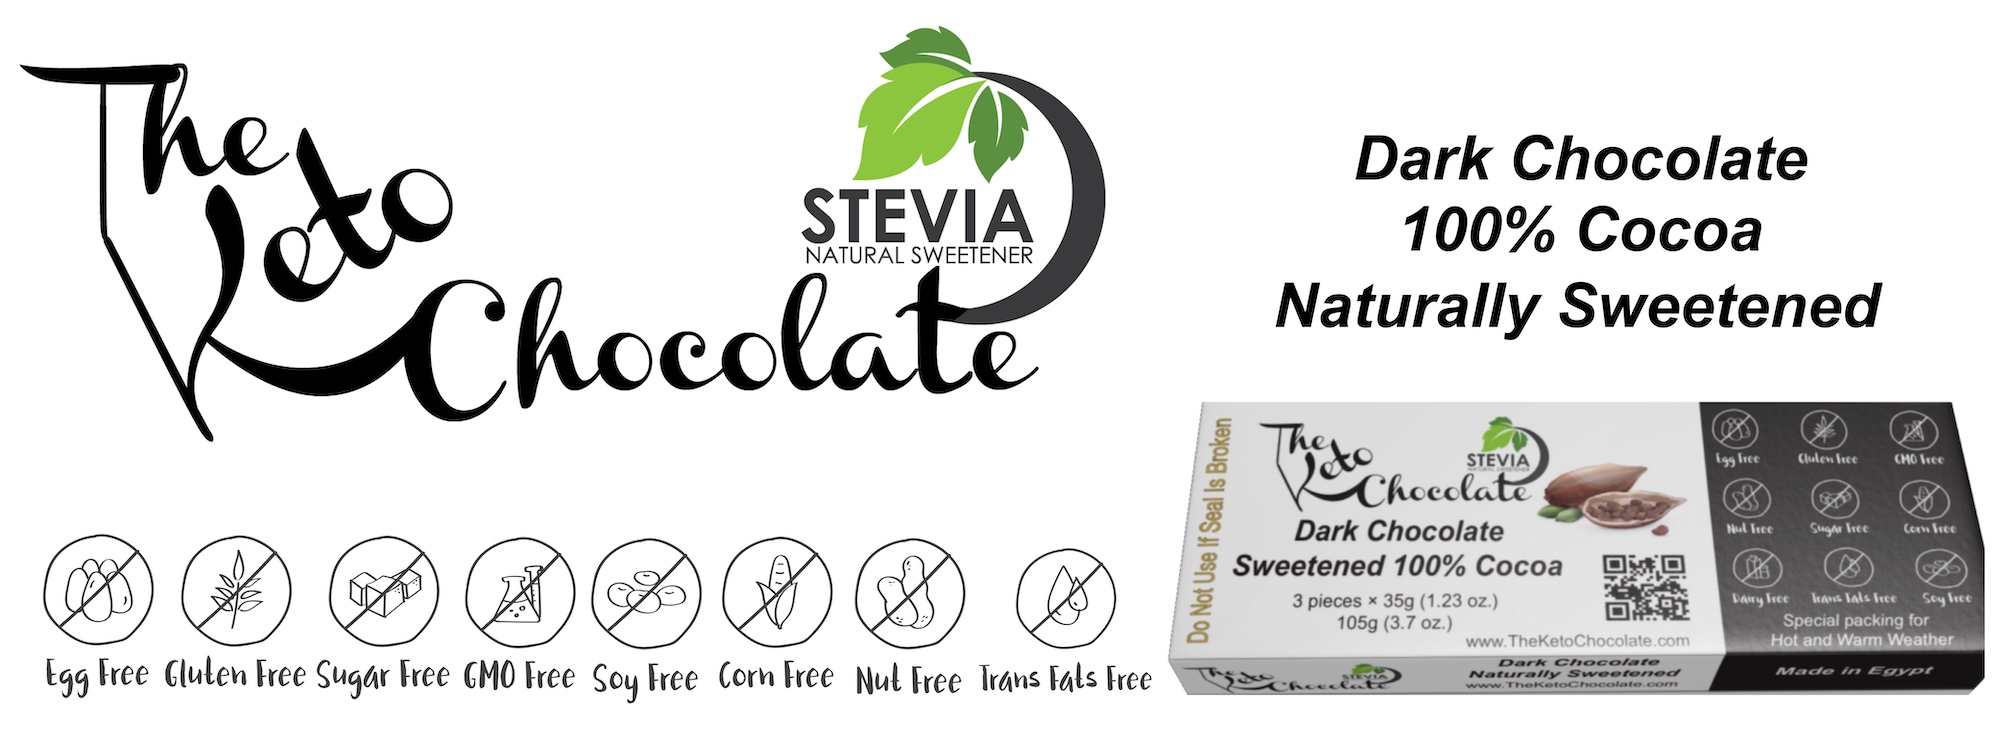 Sweetened 100% Cocoa Chocolate